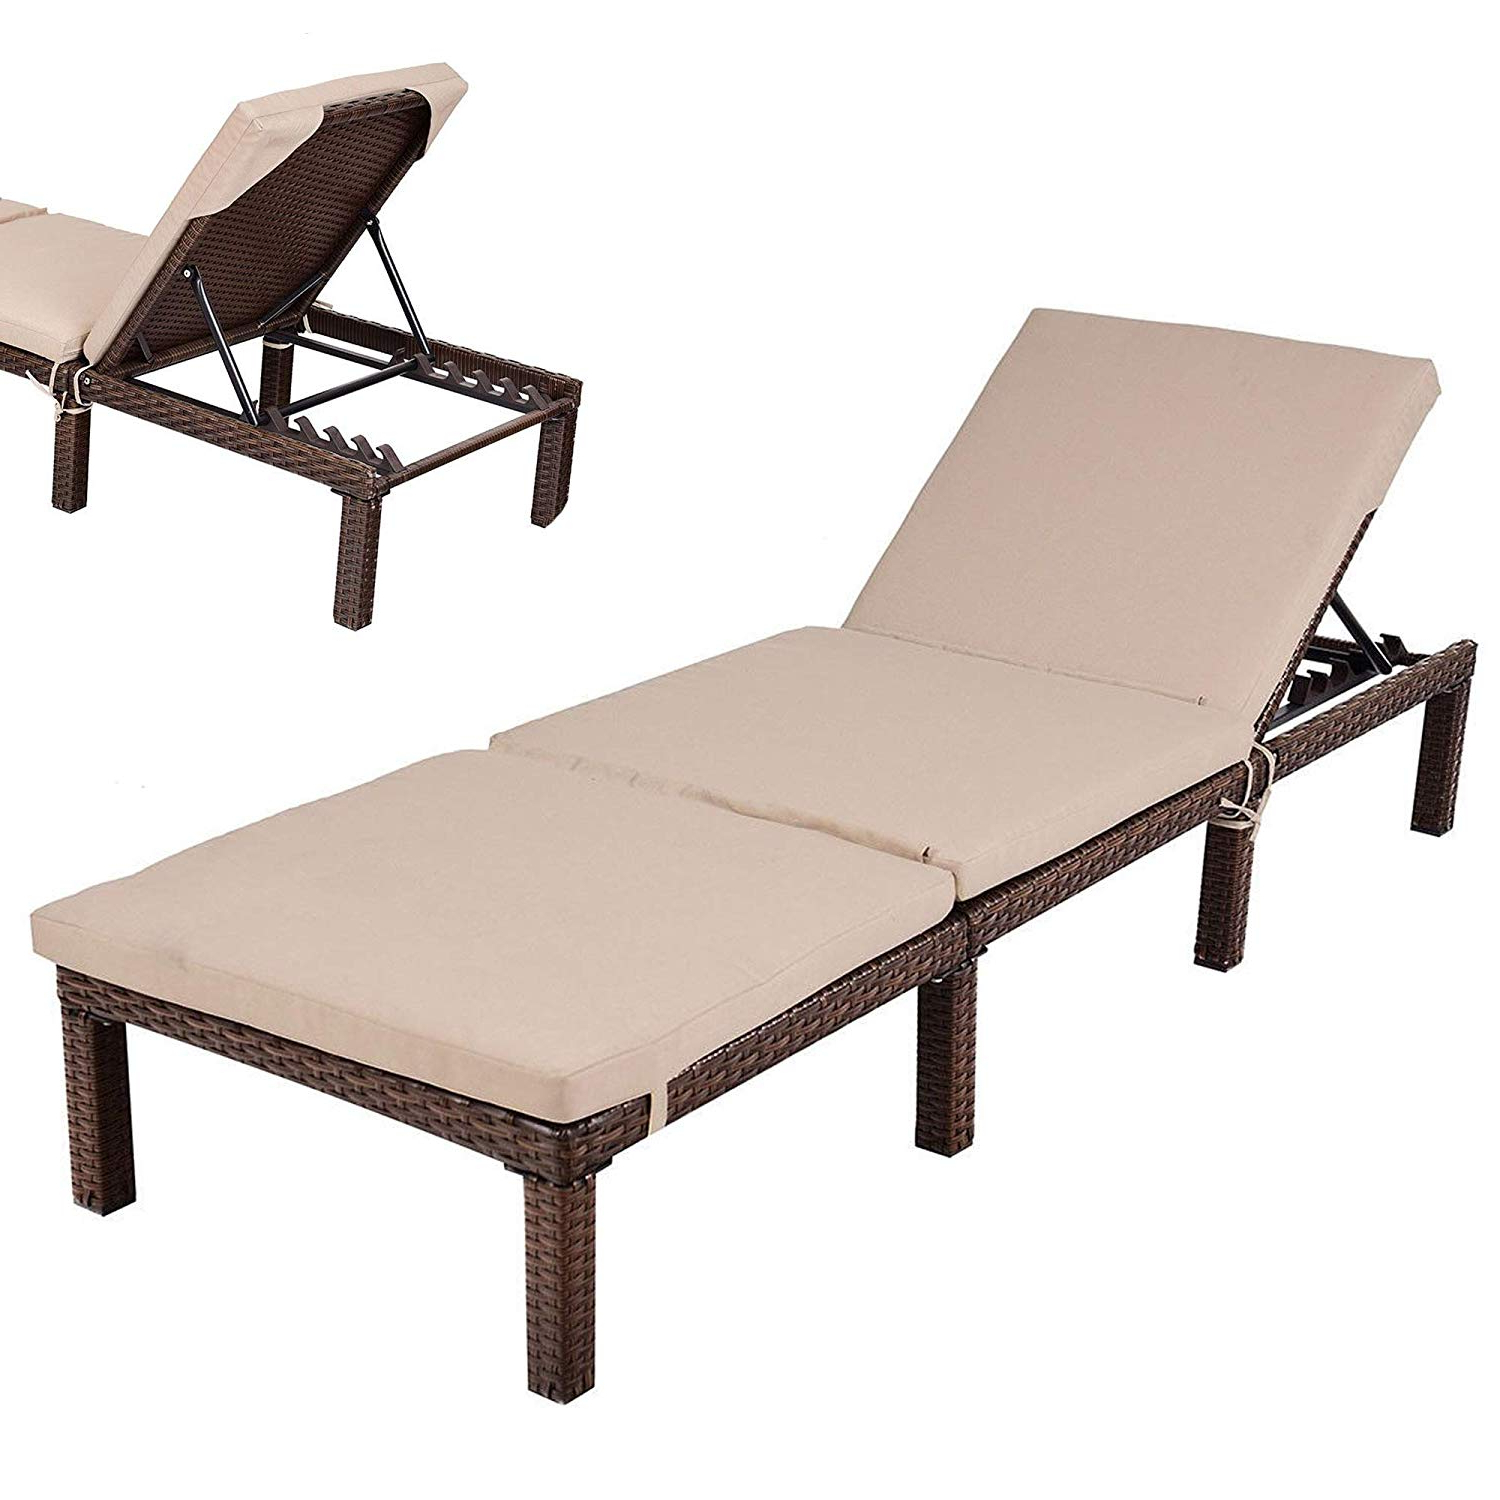 Outdoor Cushion Best Target Chaise Dimensions Pool Stunning Throughout Recent Standard Size Chaise Lounge Chairs (View 12 of 25)